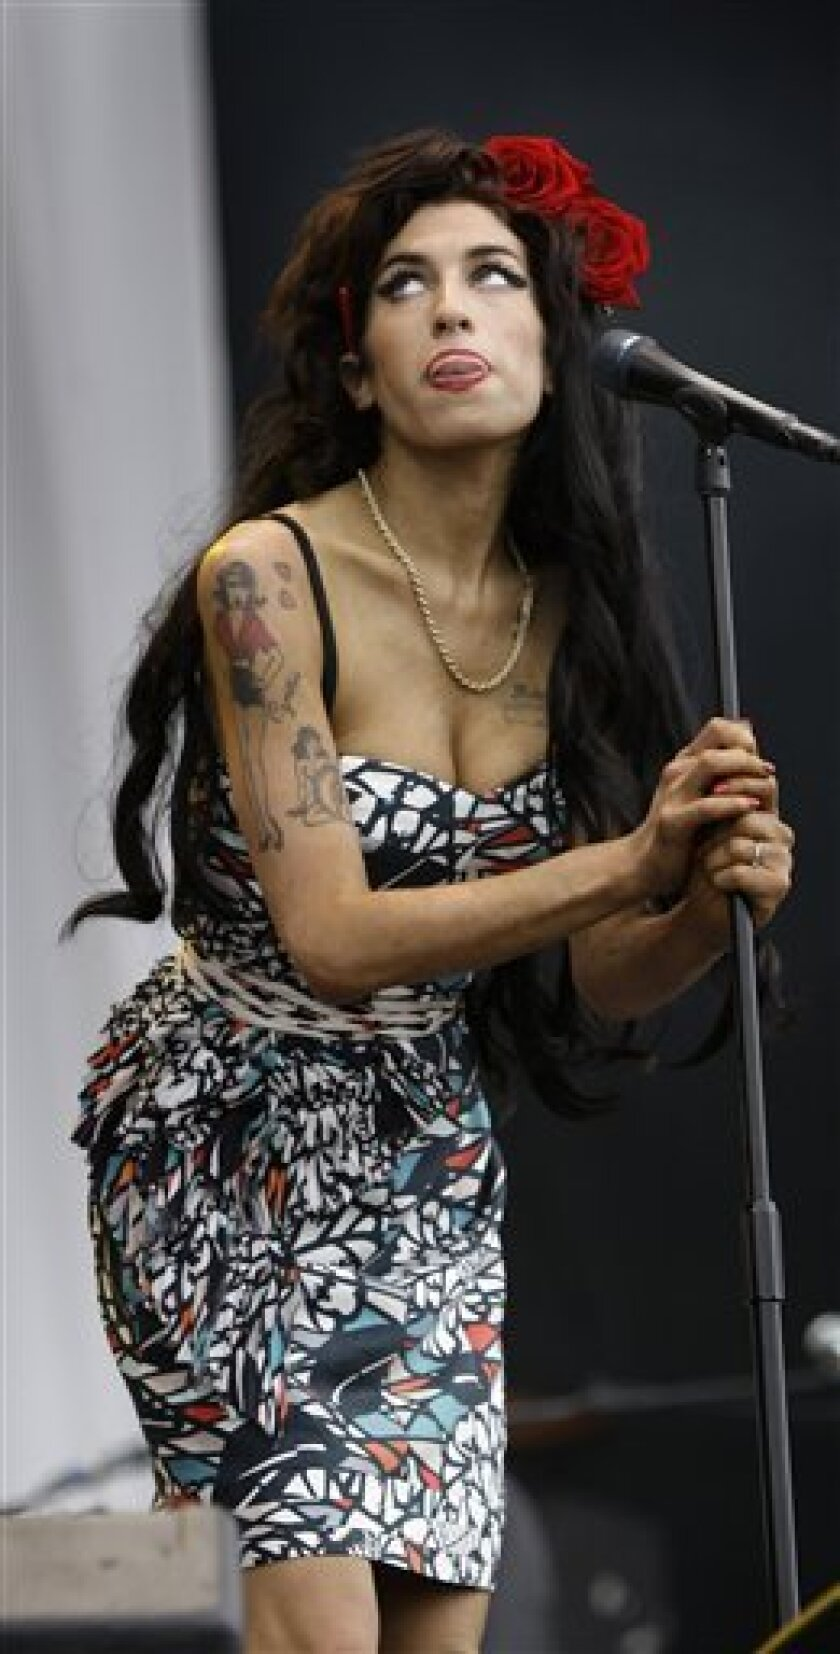 FILE - In this Sunday, Aug. 17, 2008, file photo, British singer, Amy Winehouse performs at the V Festival, near Chelmsford, England. A British newspaper says singer Amy Winehouse has won a court order banning the paparazzi from pursuing her outside her London home. The Guardian reports that she sought the order to ban photographers if they follow her or approach her within 100 meters (yards) of her home. (AP Photo/Joel Ryan, File)